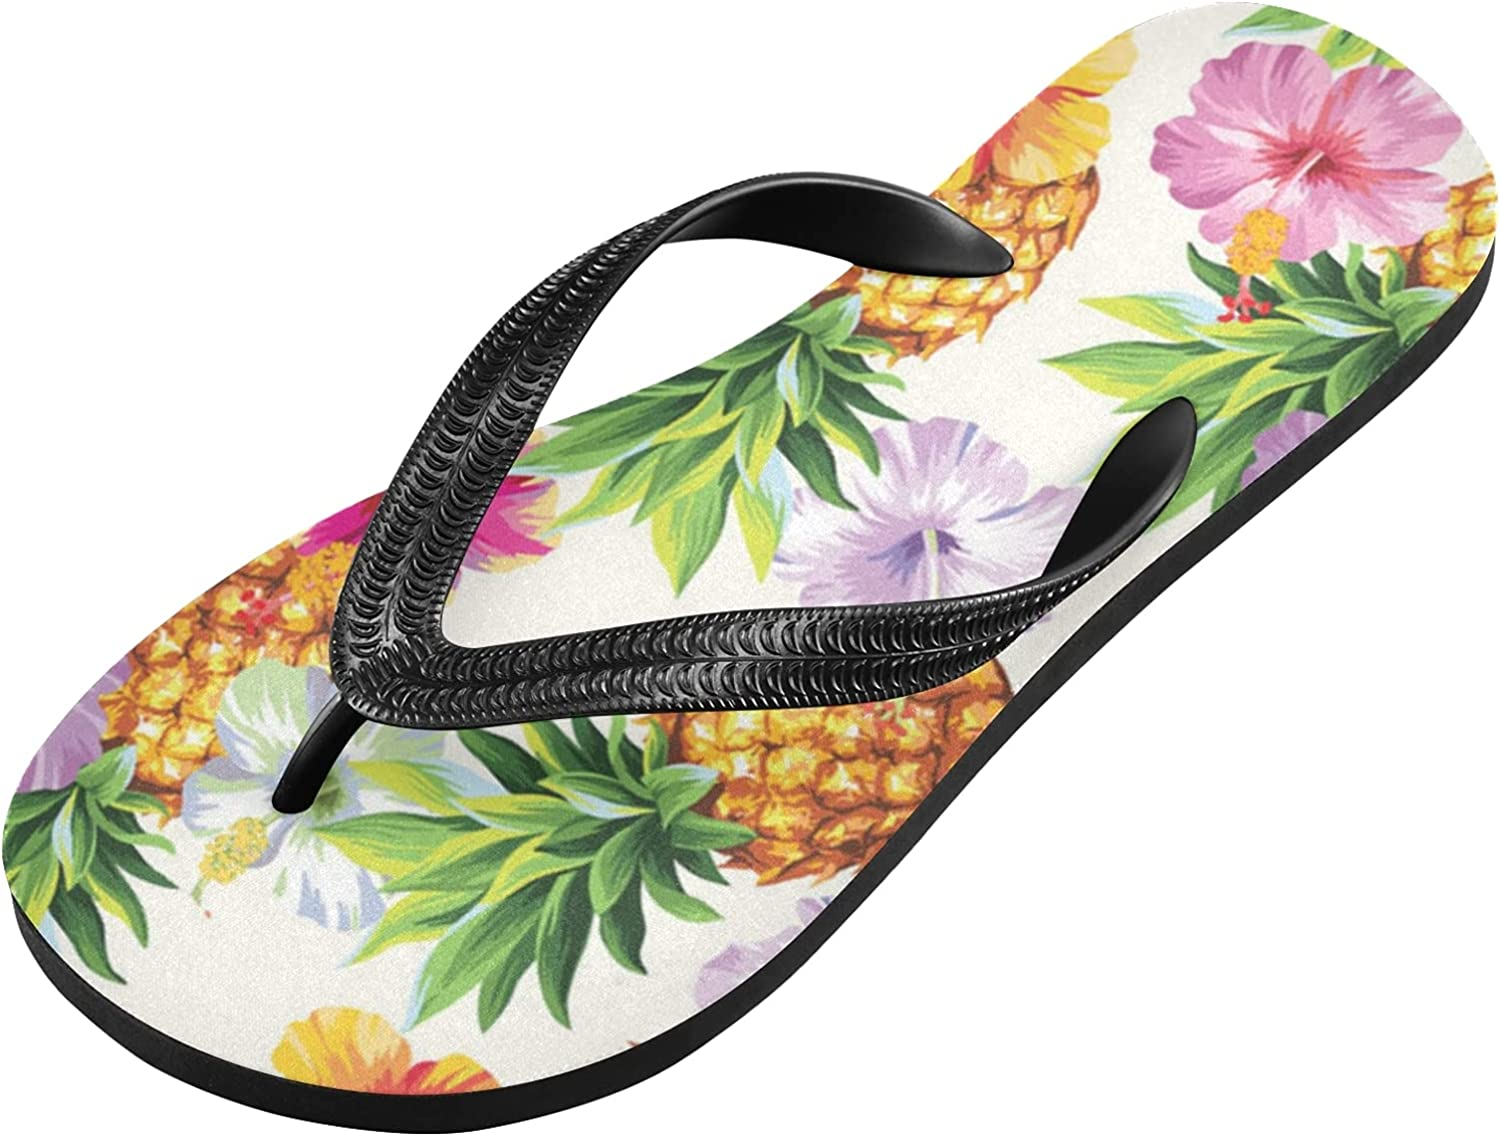 Qilmy Beautiful Tropical Fruit Pineapple Colorful Flowers Summer Flip Flop Casual Lightweight Non-slip Sandals Women's Men Slippers,S